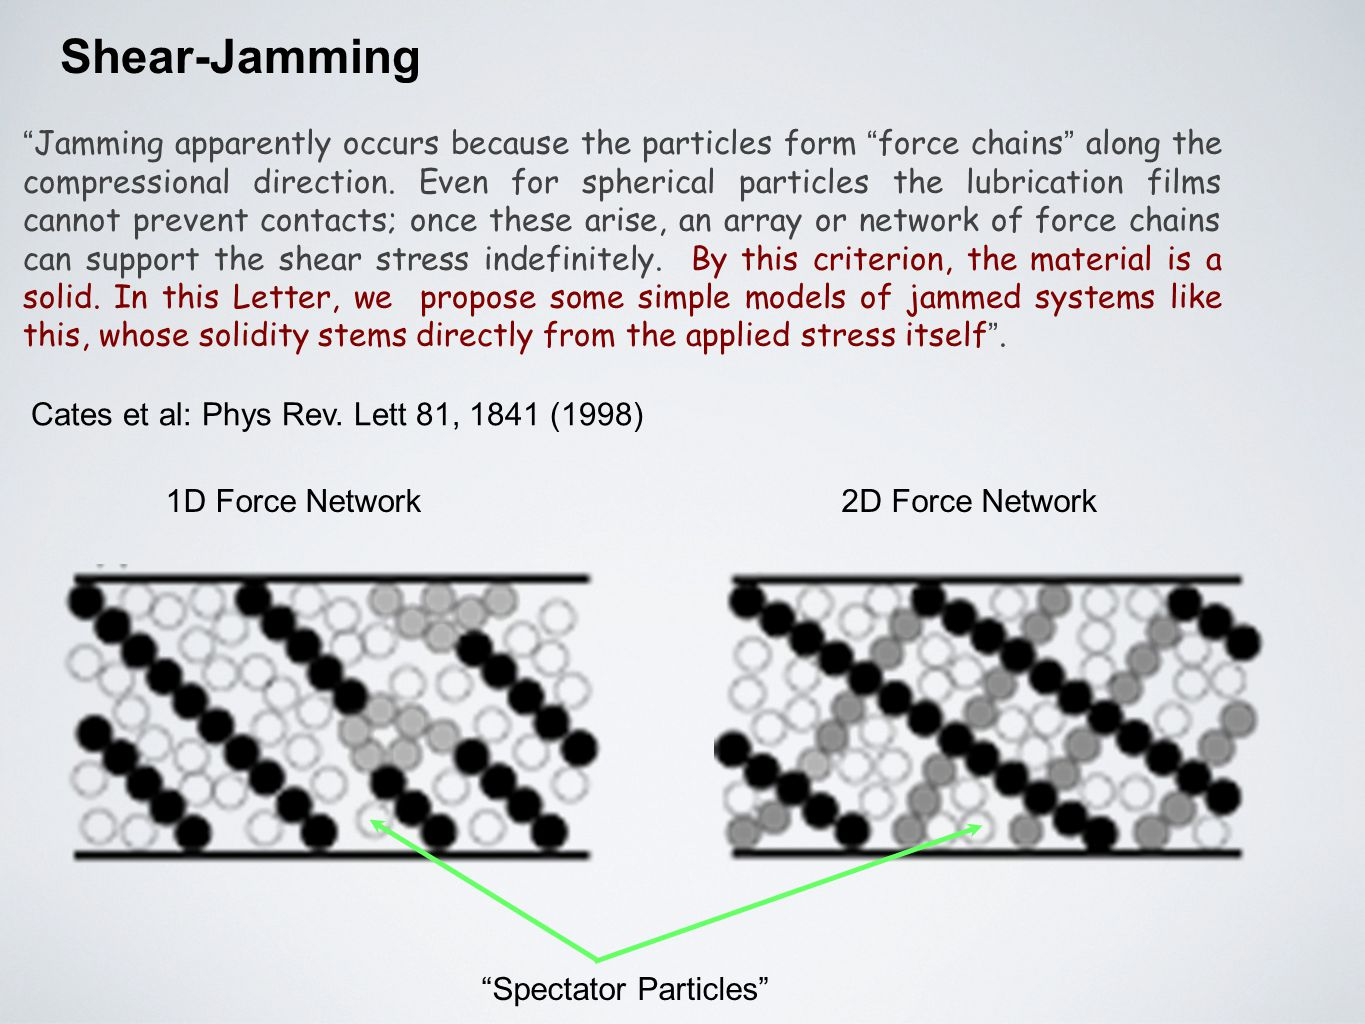 Shear-Jamming